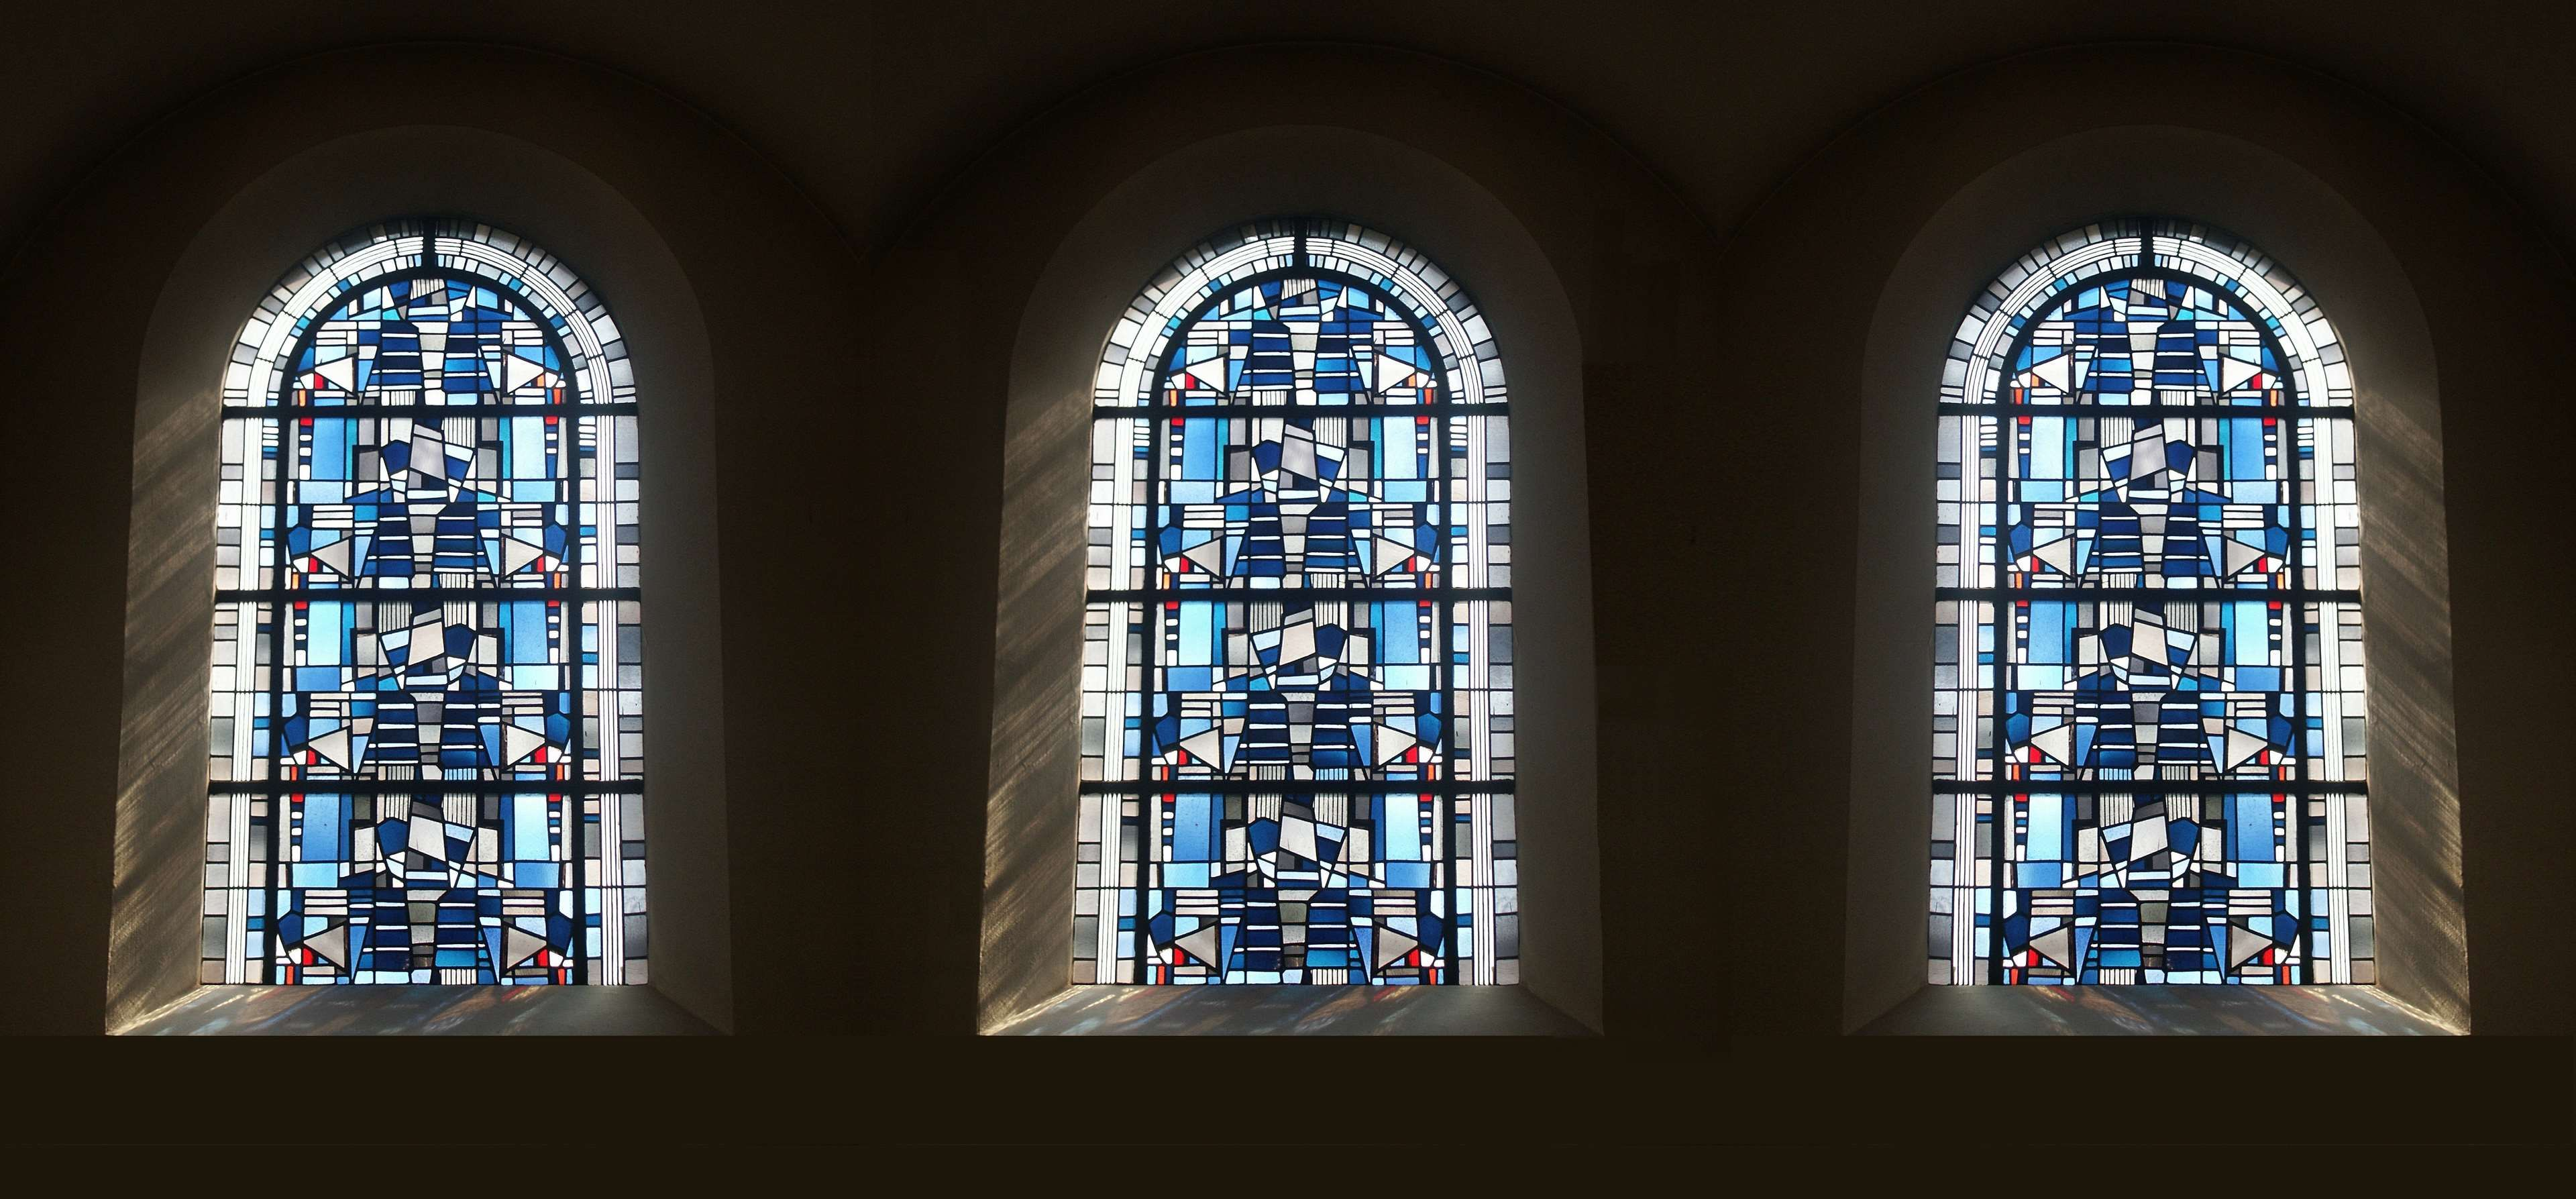 #blue #church #church Window #color #color Glazing #colorful #colorful Amazing Design